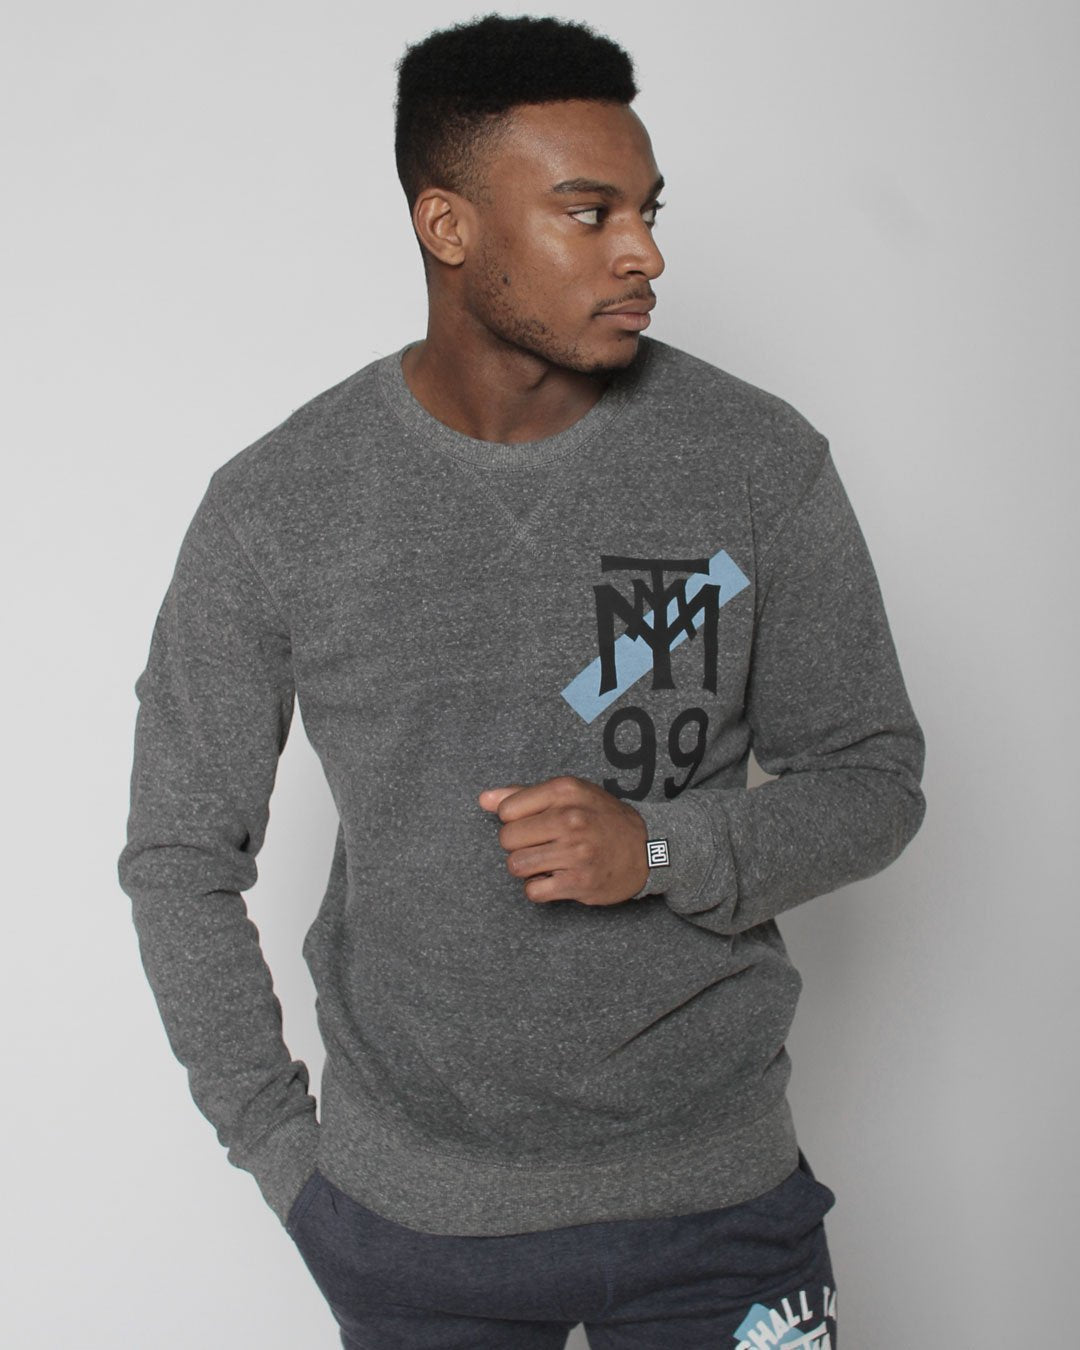 Marshall Taylor Ground Breakers Sweatshirt - Roots of Inc dba Roots of Fight